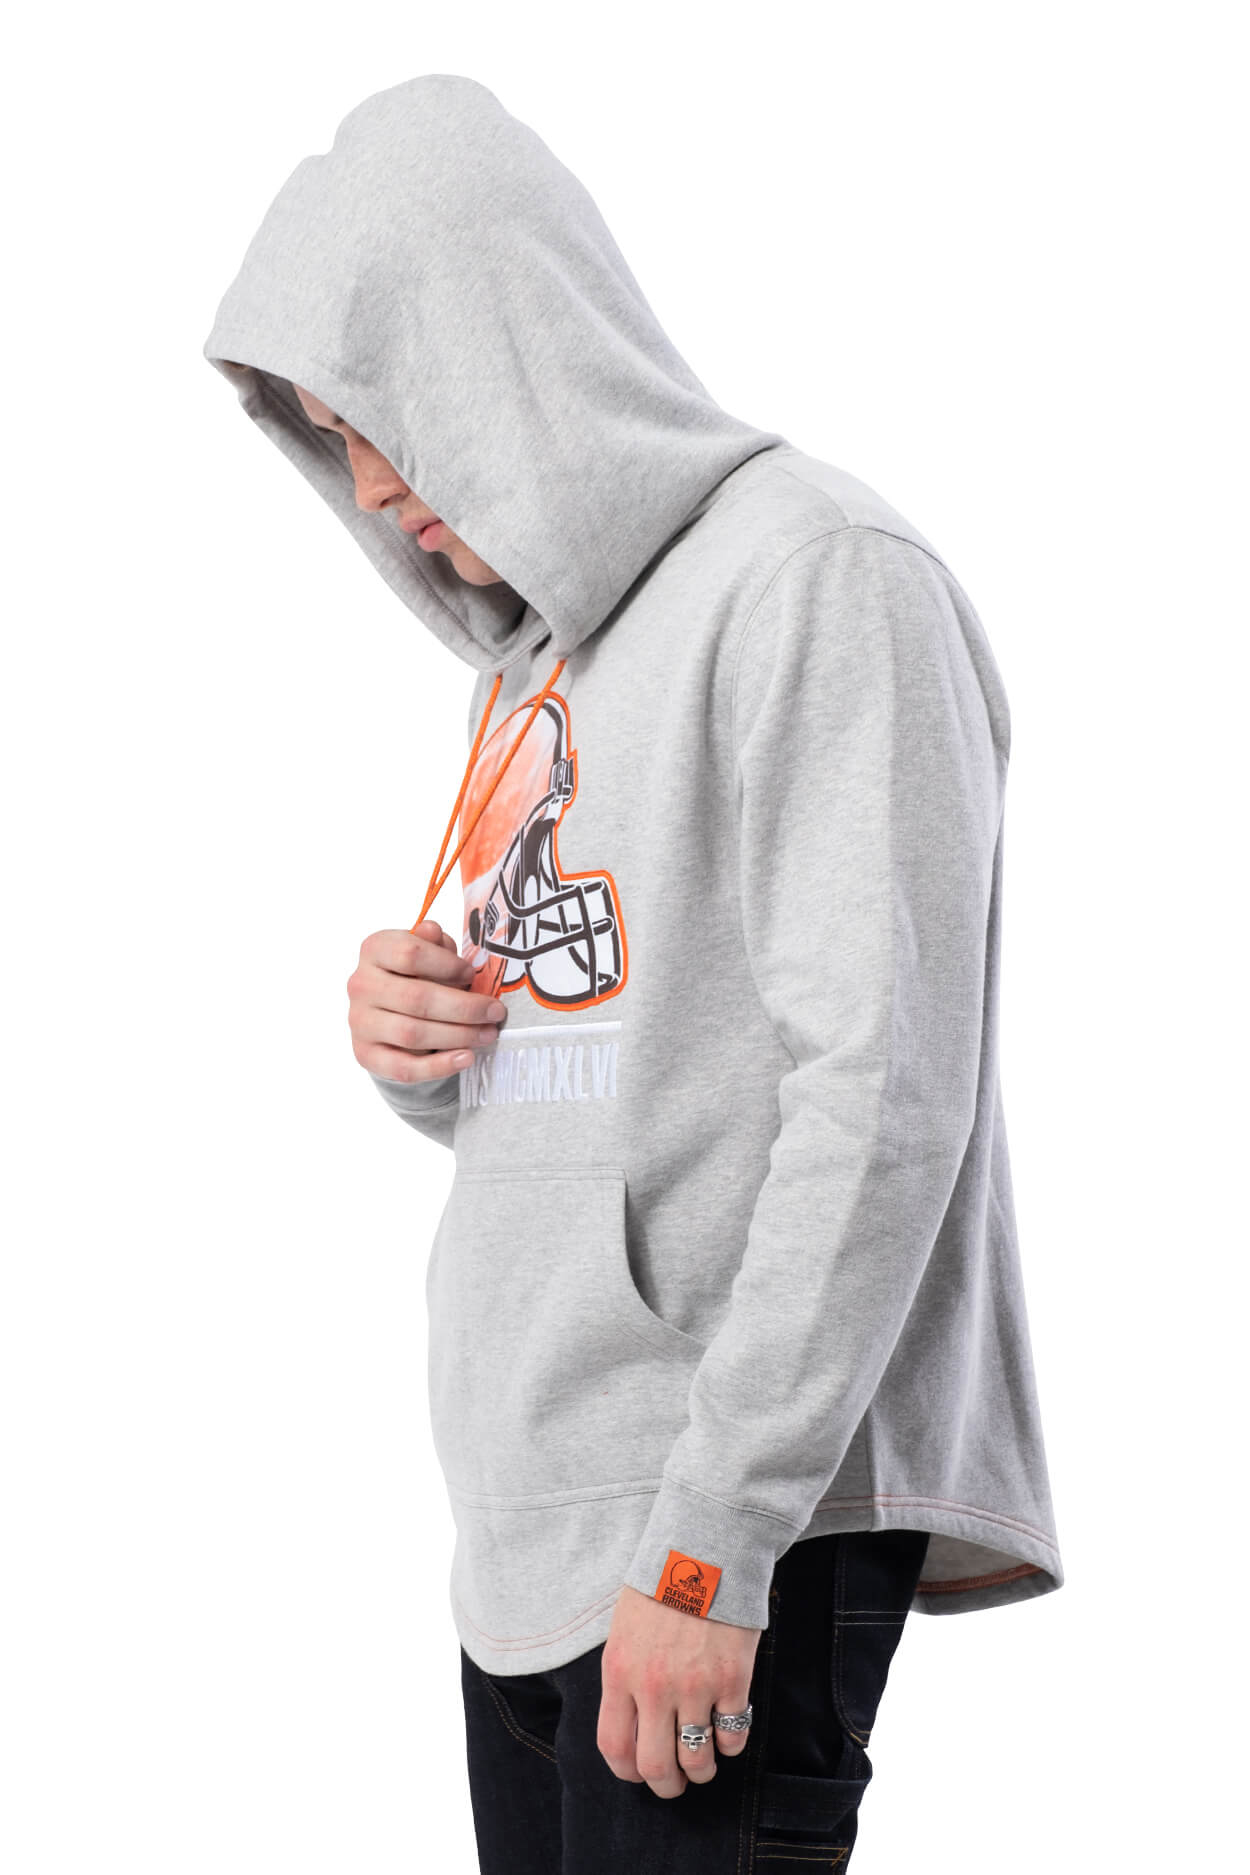 NFL Cleveland Browns Men's Embroidered Hoodie|Cleveland Browns